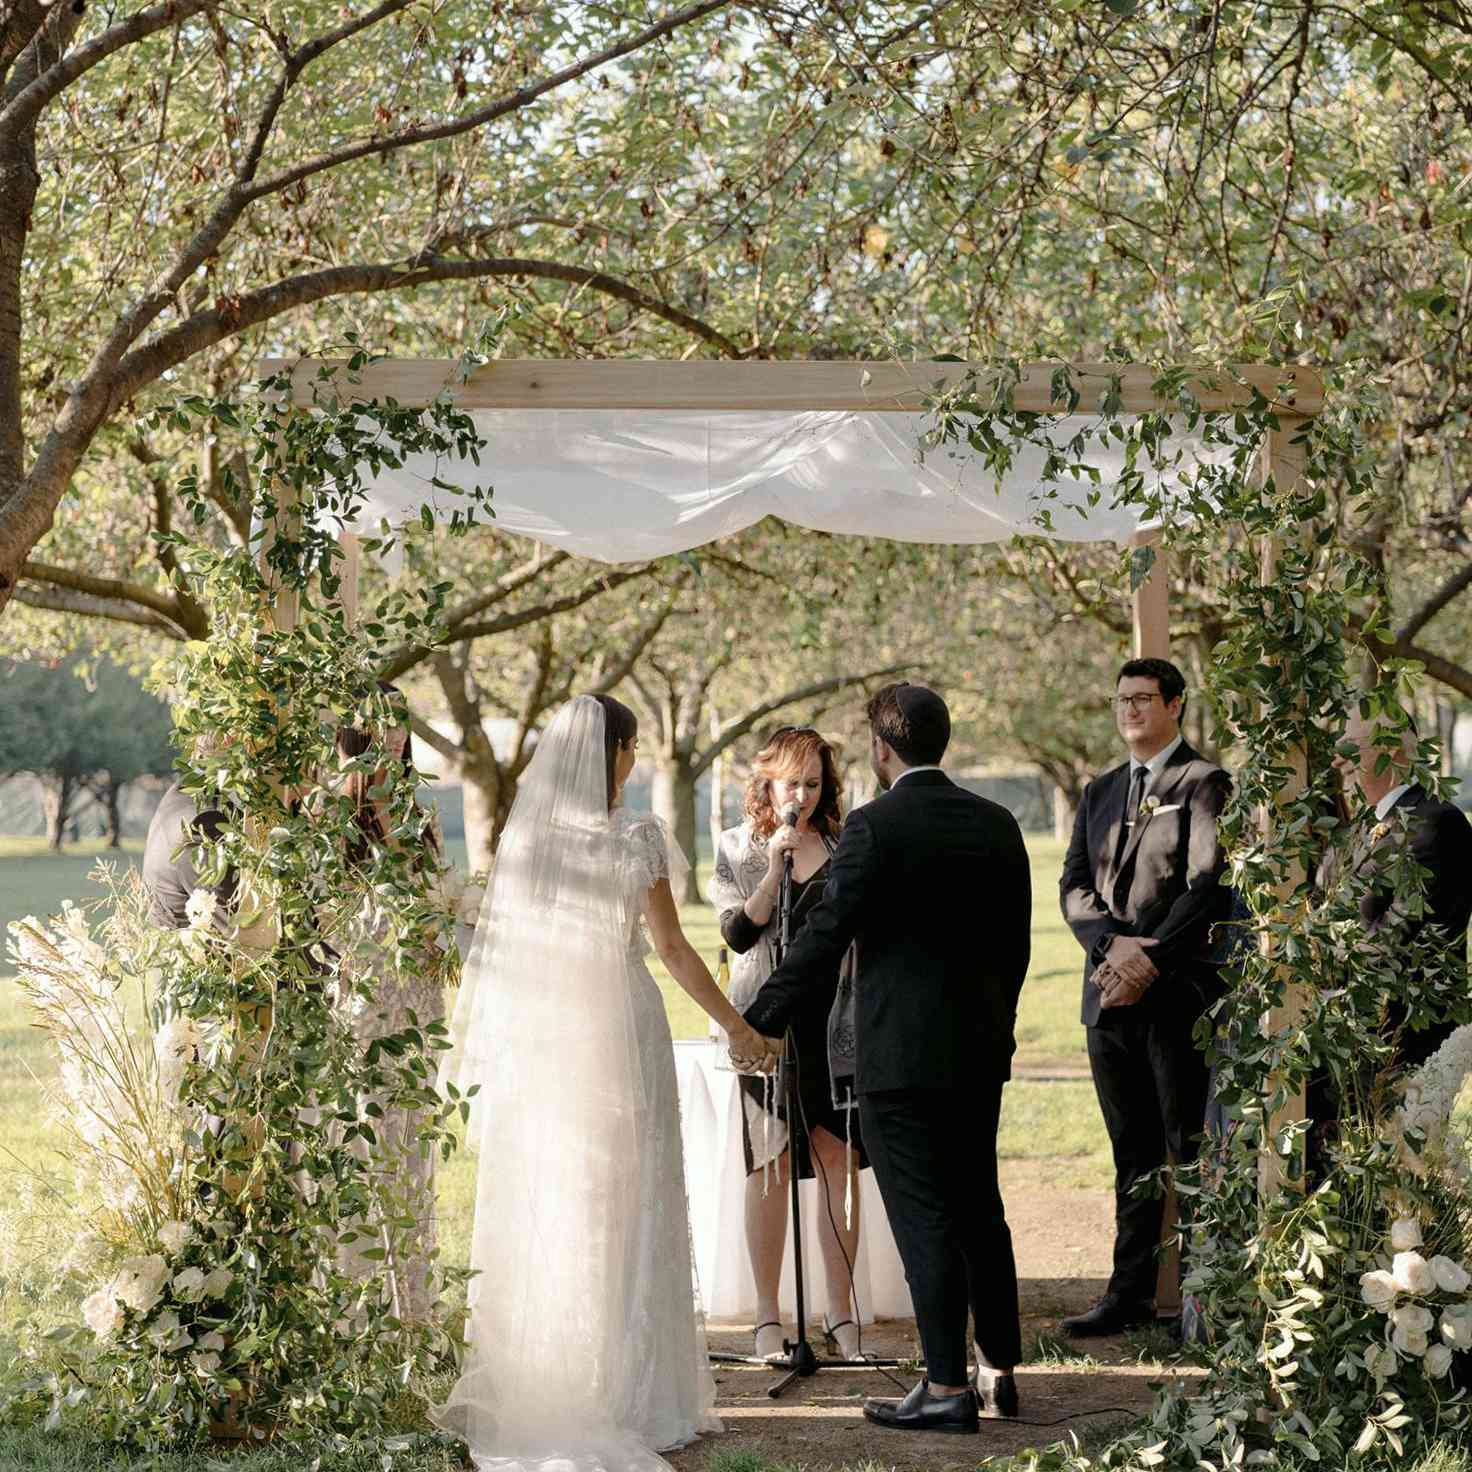 Bride and groom at the altar with woman officiant